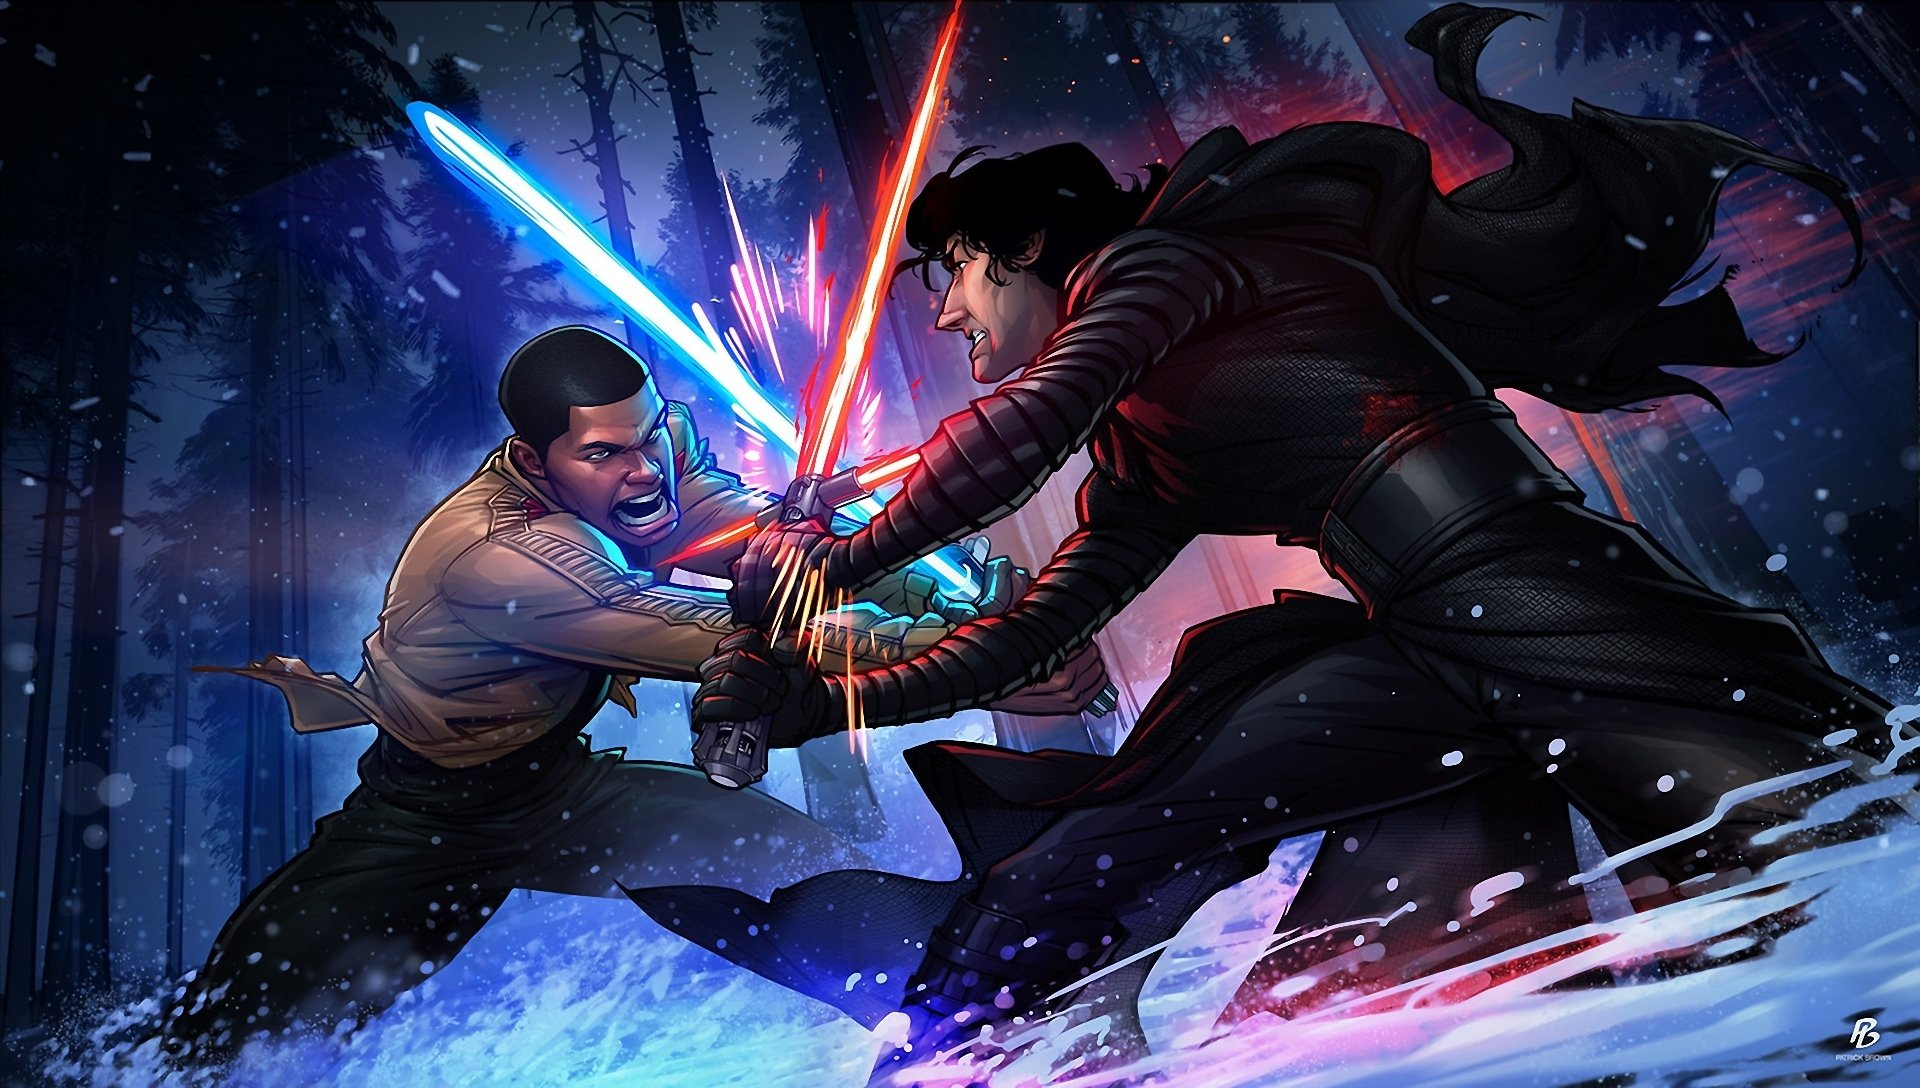 Star Wars The Force Awakens Papel De Parede Hd Plano De Fundo